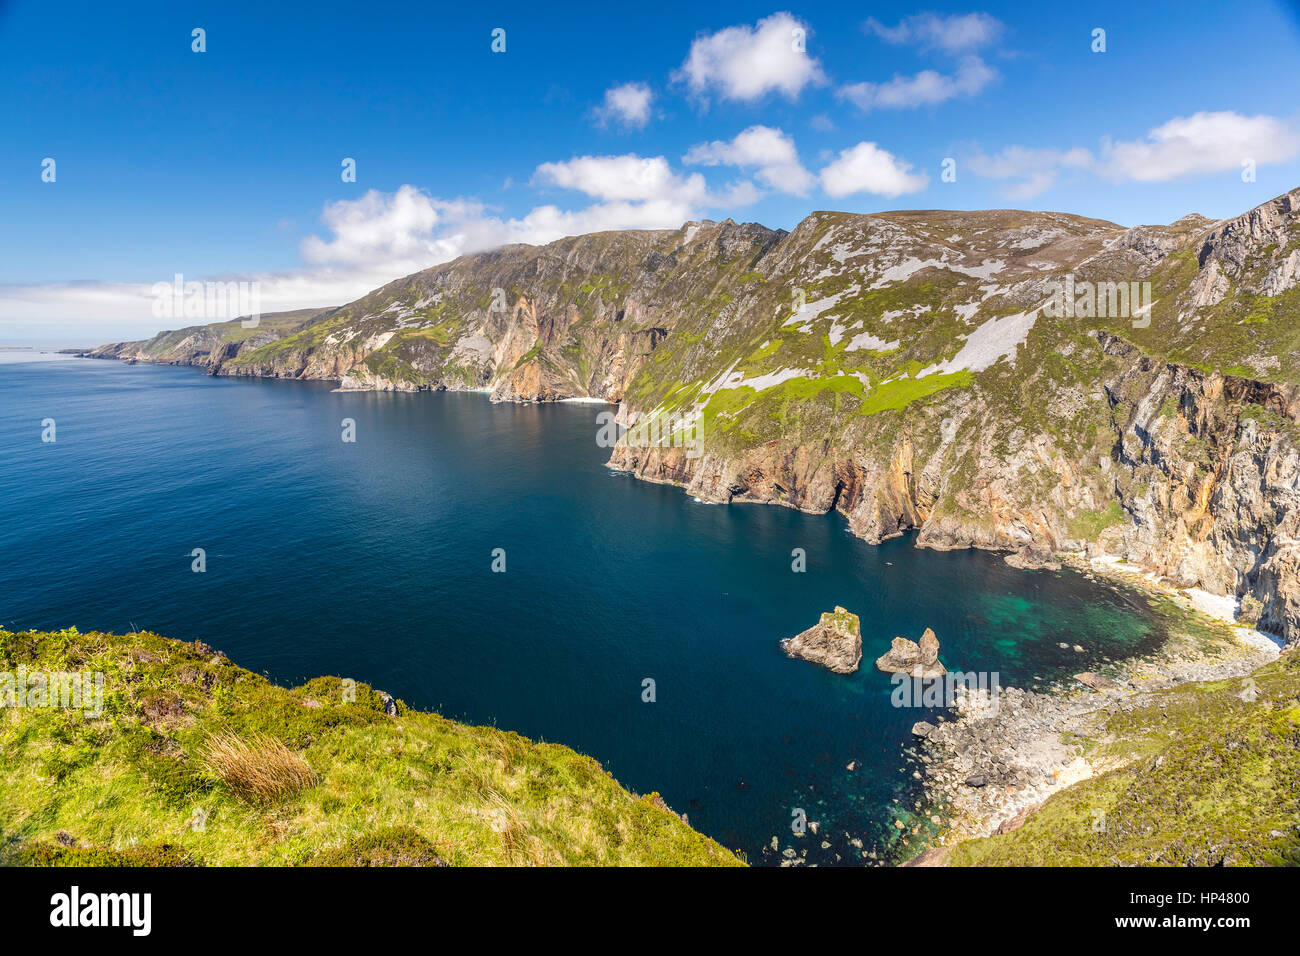 Slieve League cliffs near Carrick in county Donegal, Ireland, Europe. - Stock Image